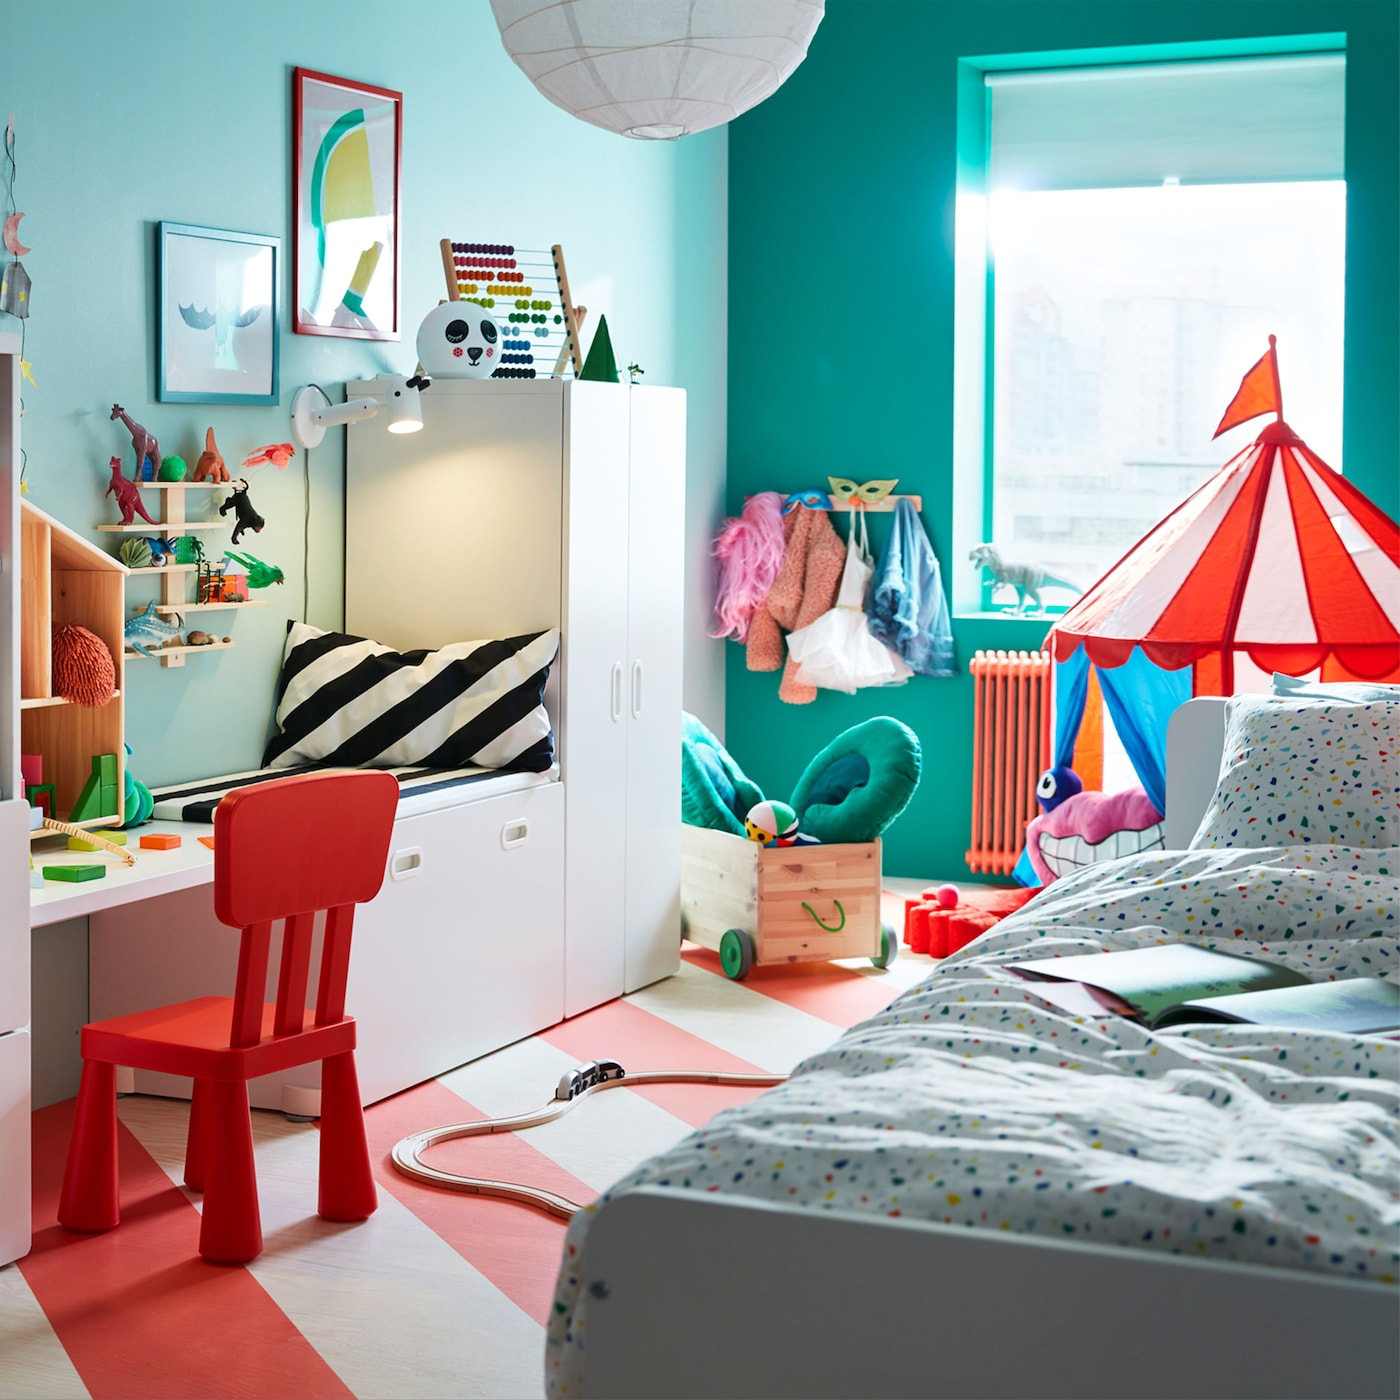 Today 2020 12 15 Surprising Ikea Kids Bedroom Furniture Best Ideas For Us